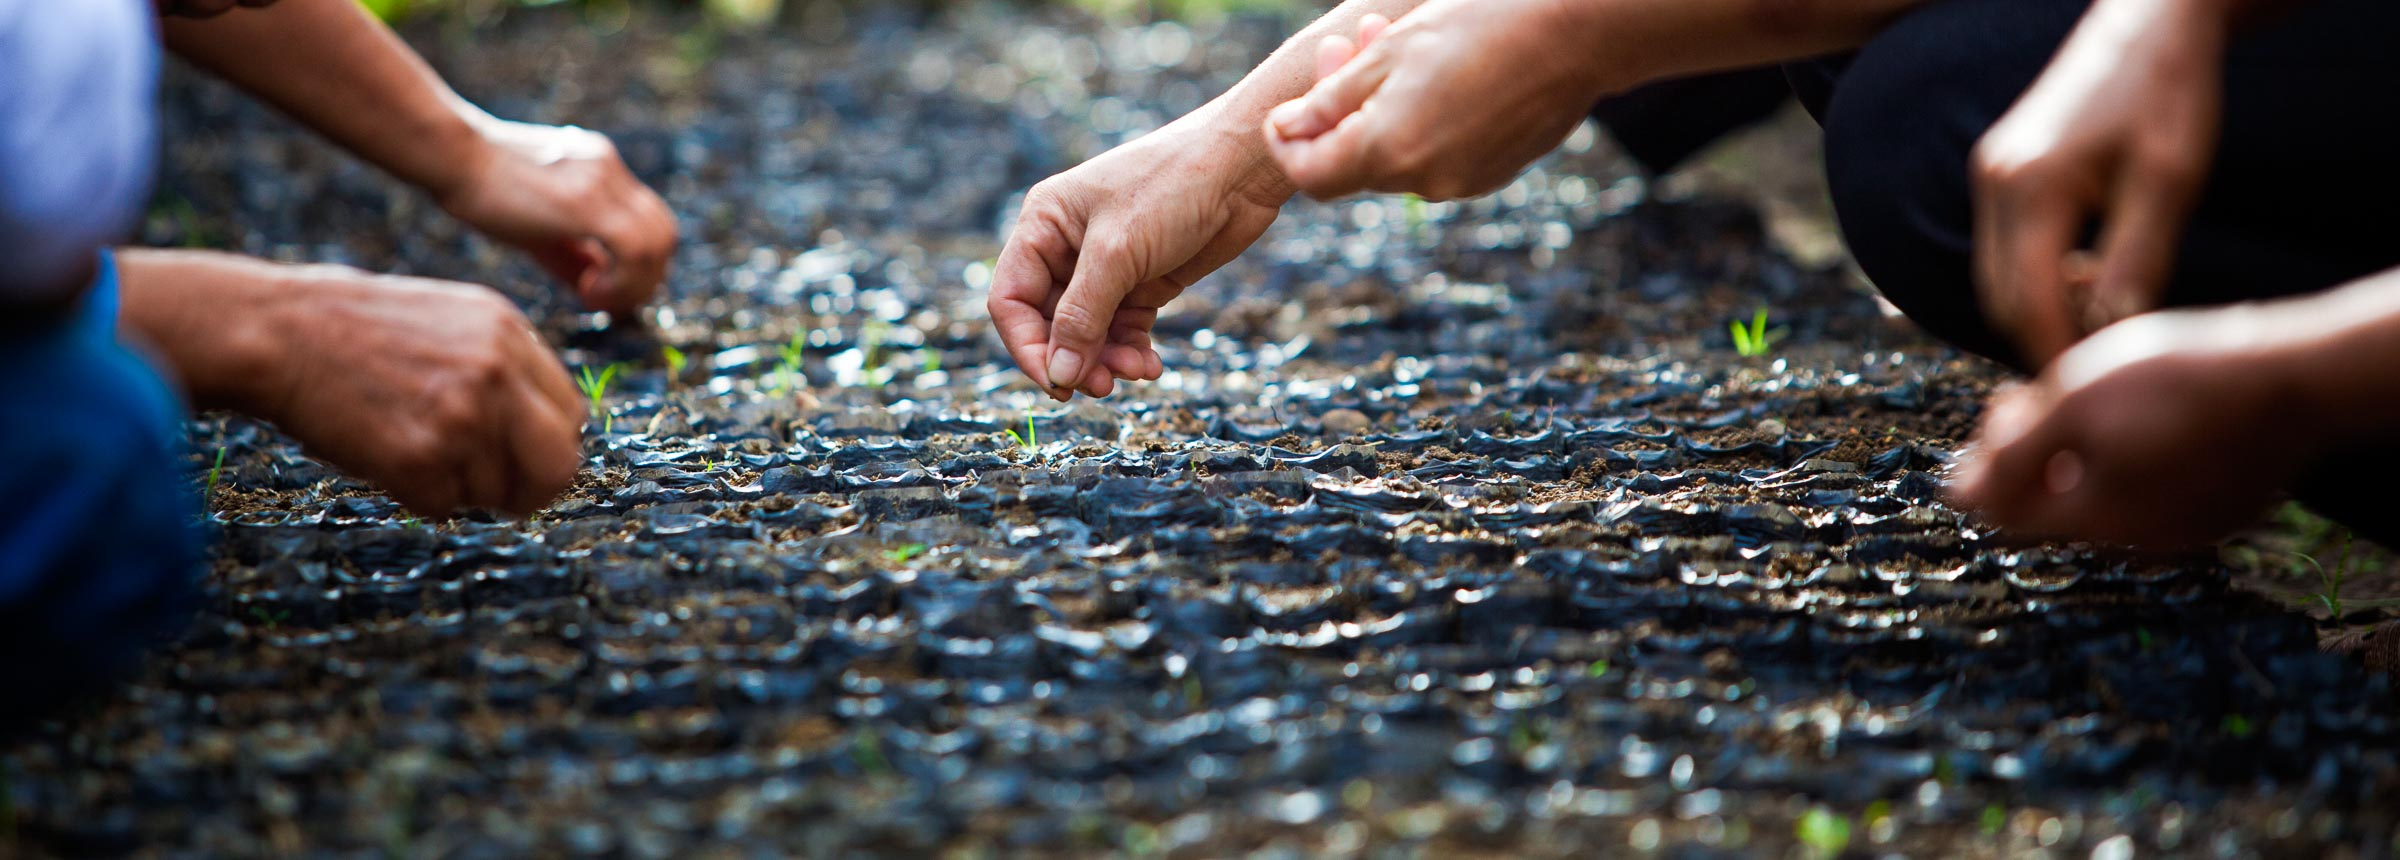 People planting seeds